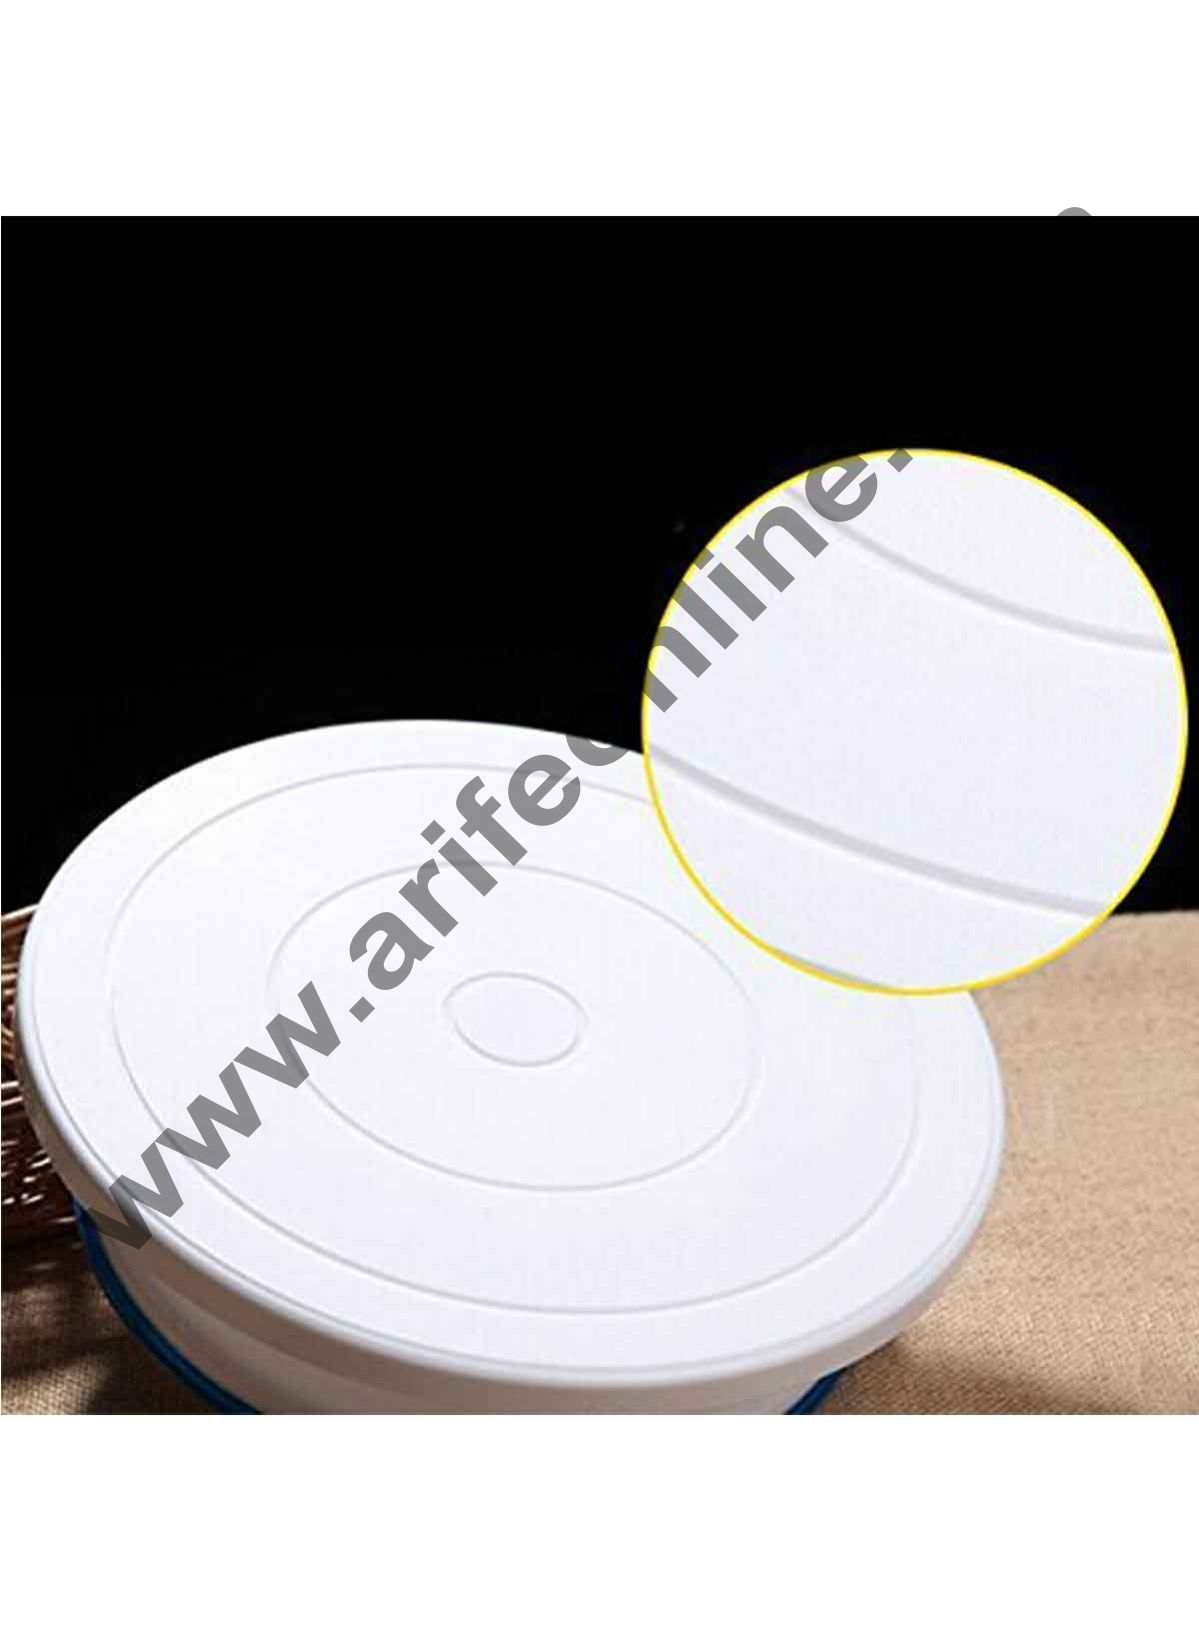 Cake Decor Round Rotating Revolving Cake Turntable Decorating Stand Platform, 29 CM White